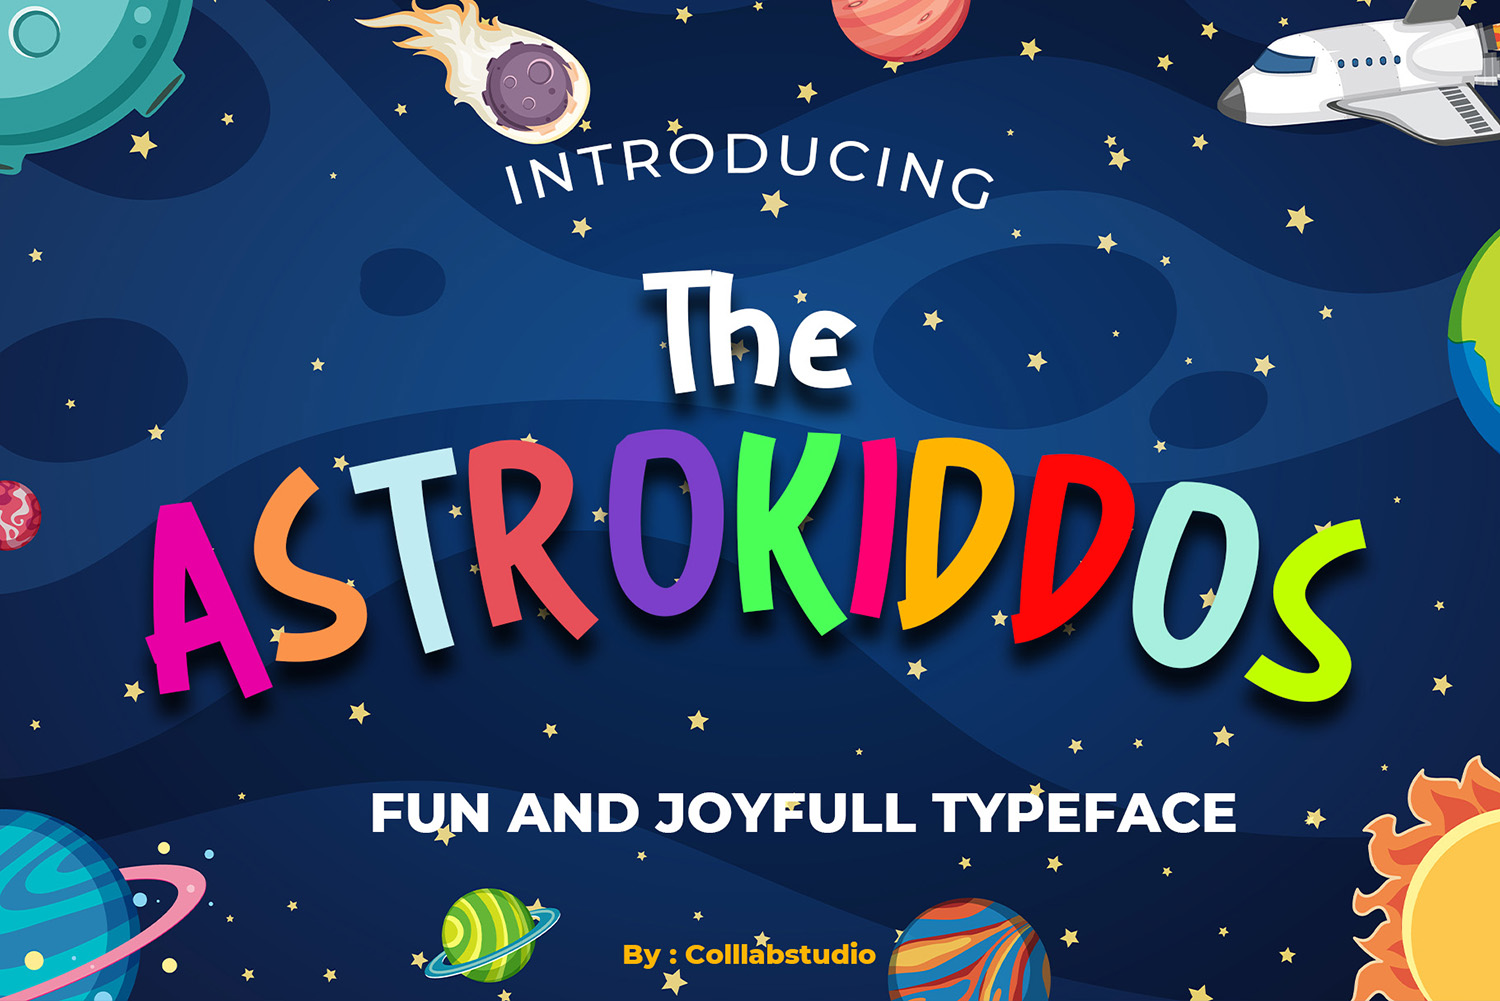 The Astrokiddos Free Font